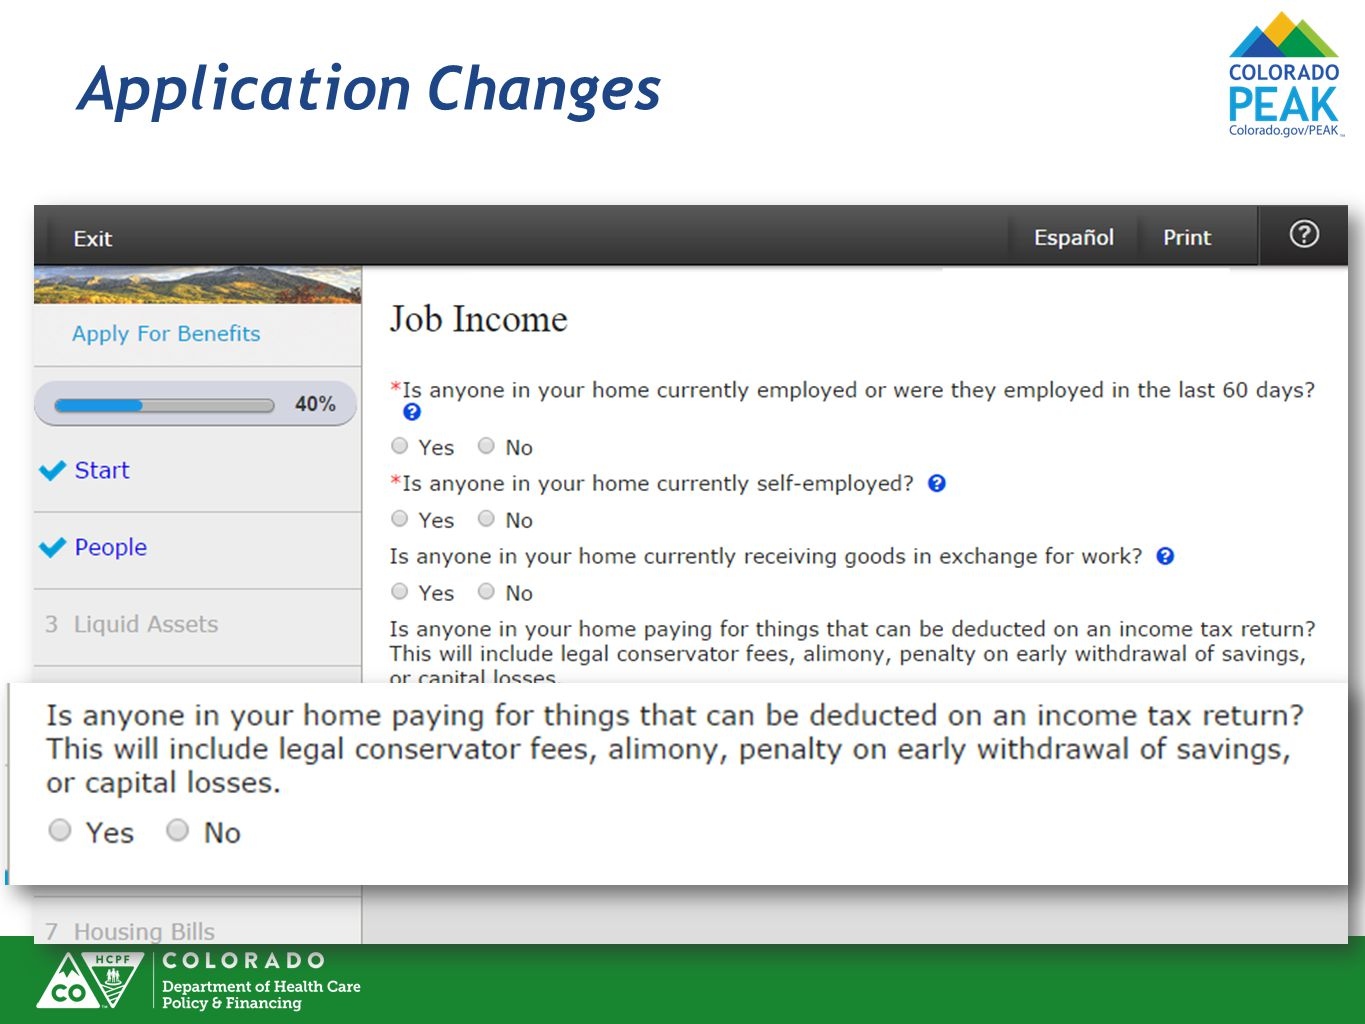 Application Changes Deductions related to Job also, not just Self-Employment.